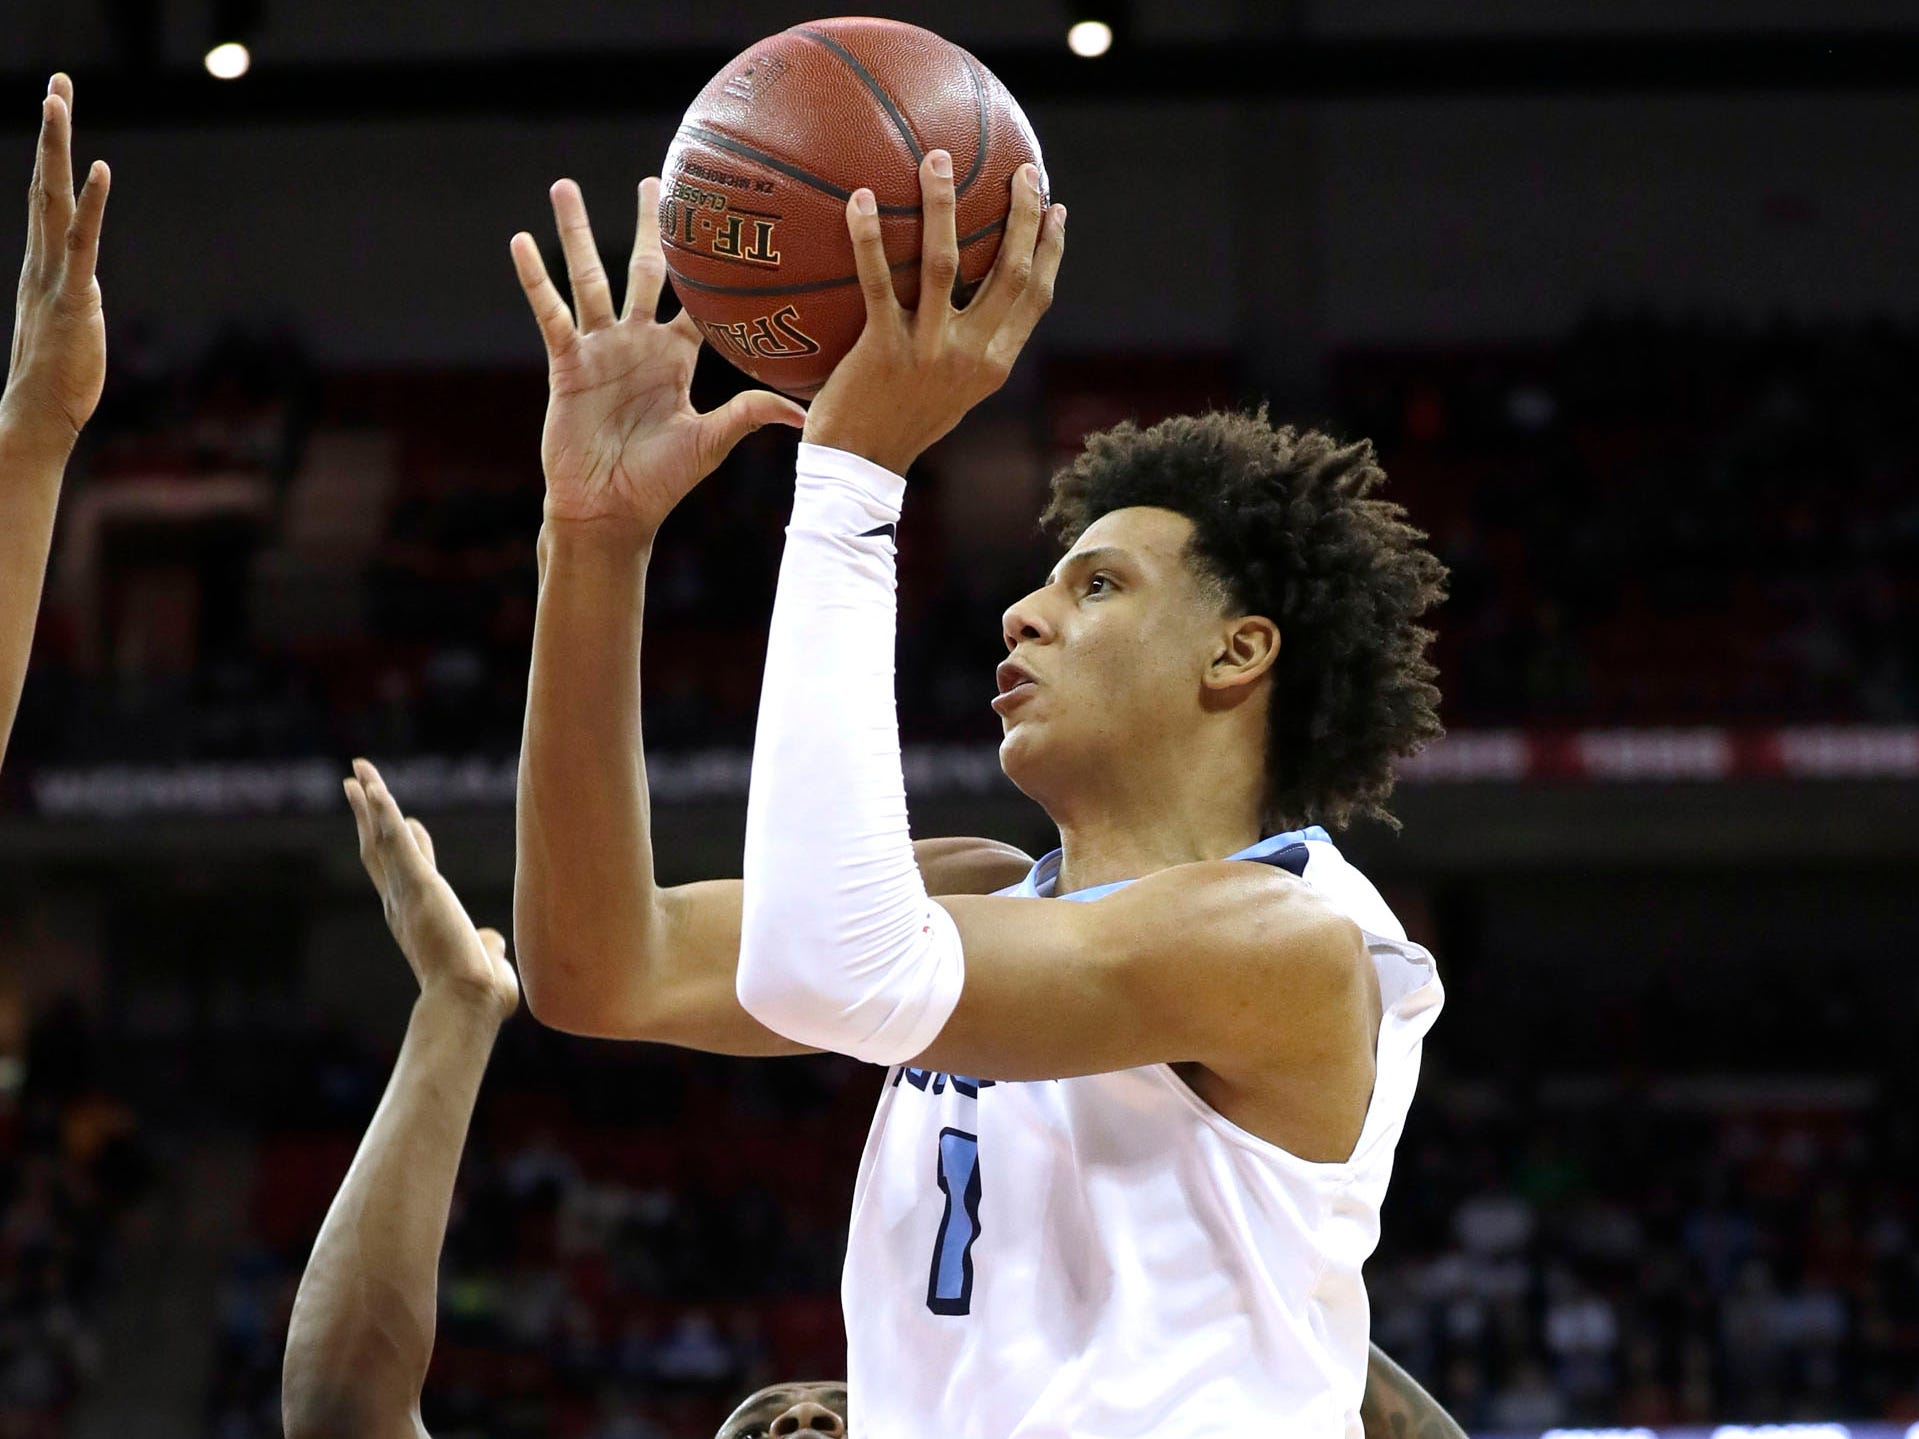 Nicolet's  Jalen Johnson drives to the basket for a shot against Washington on Saturday.